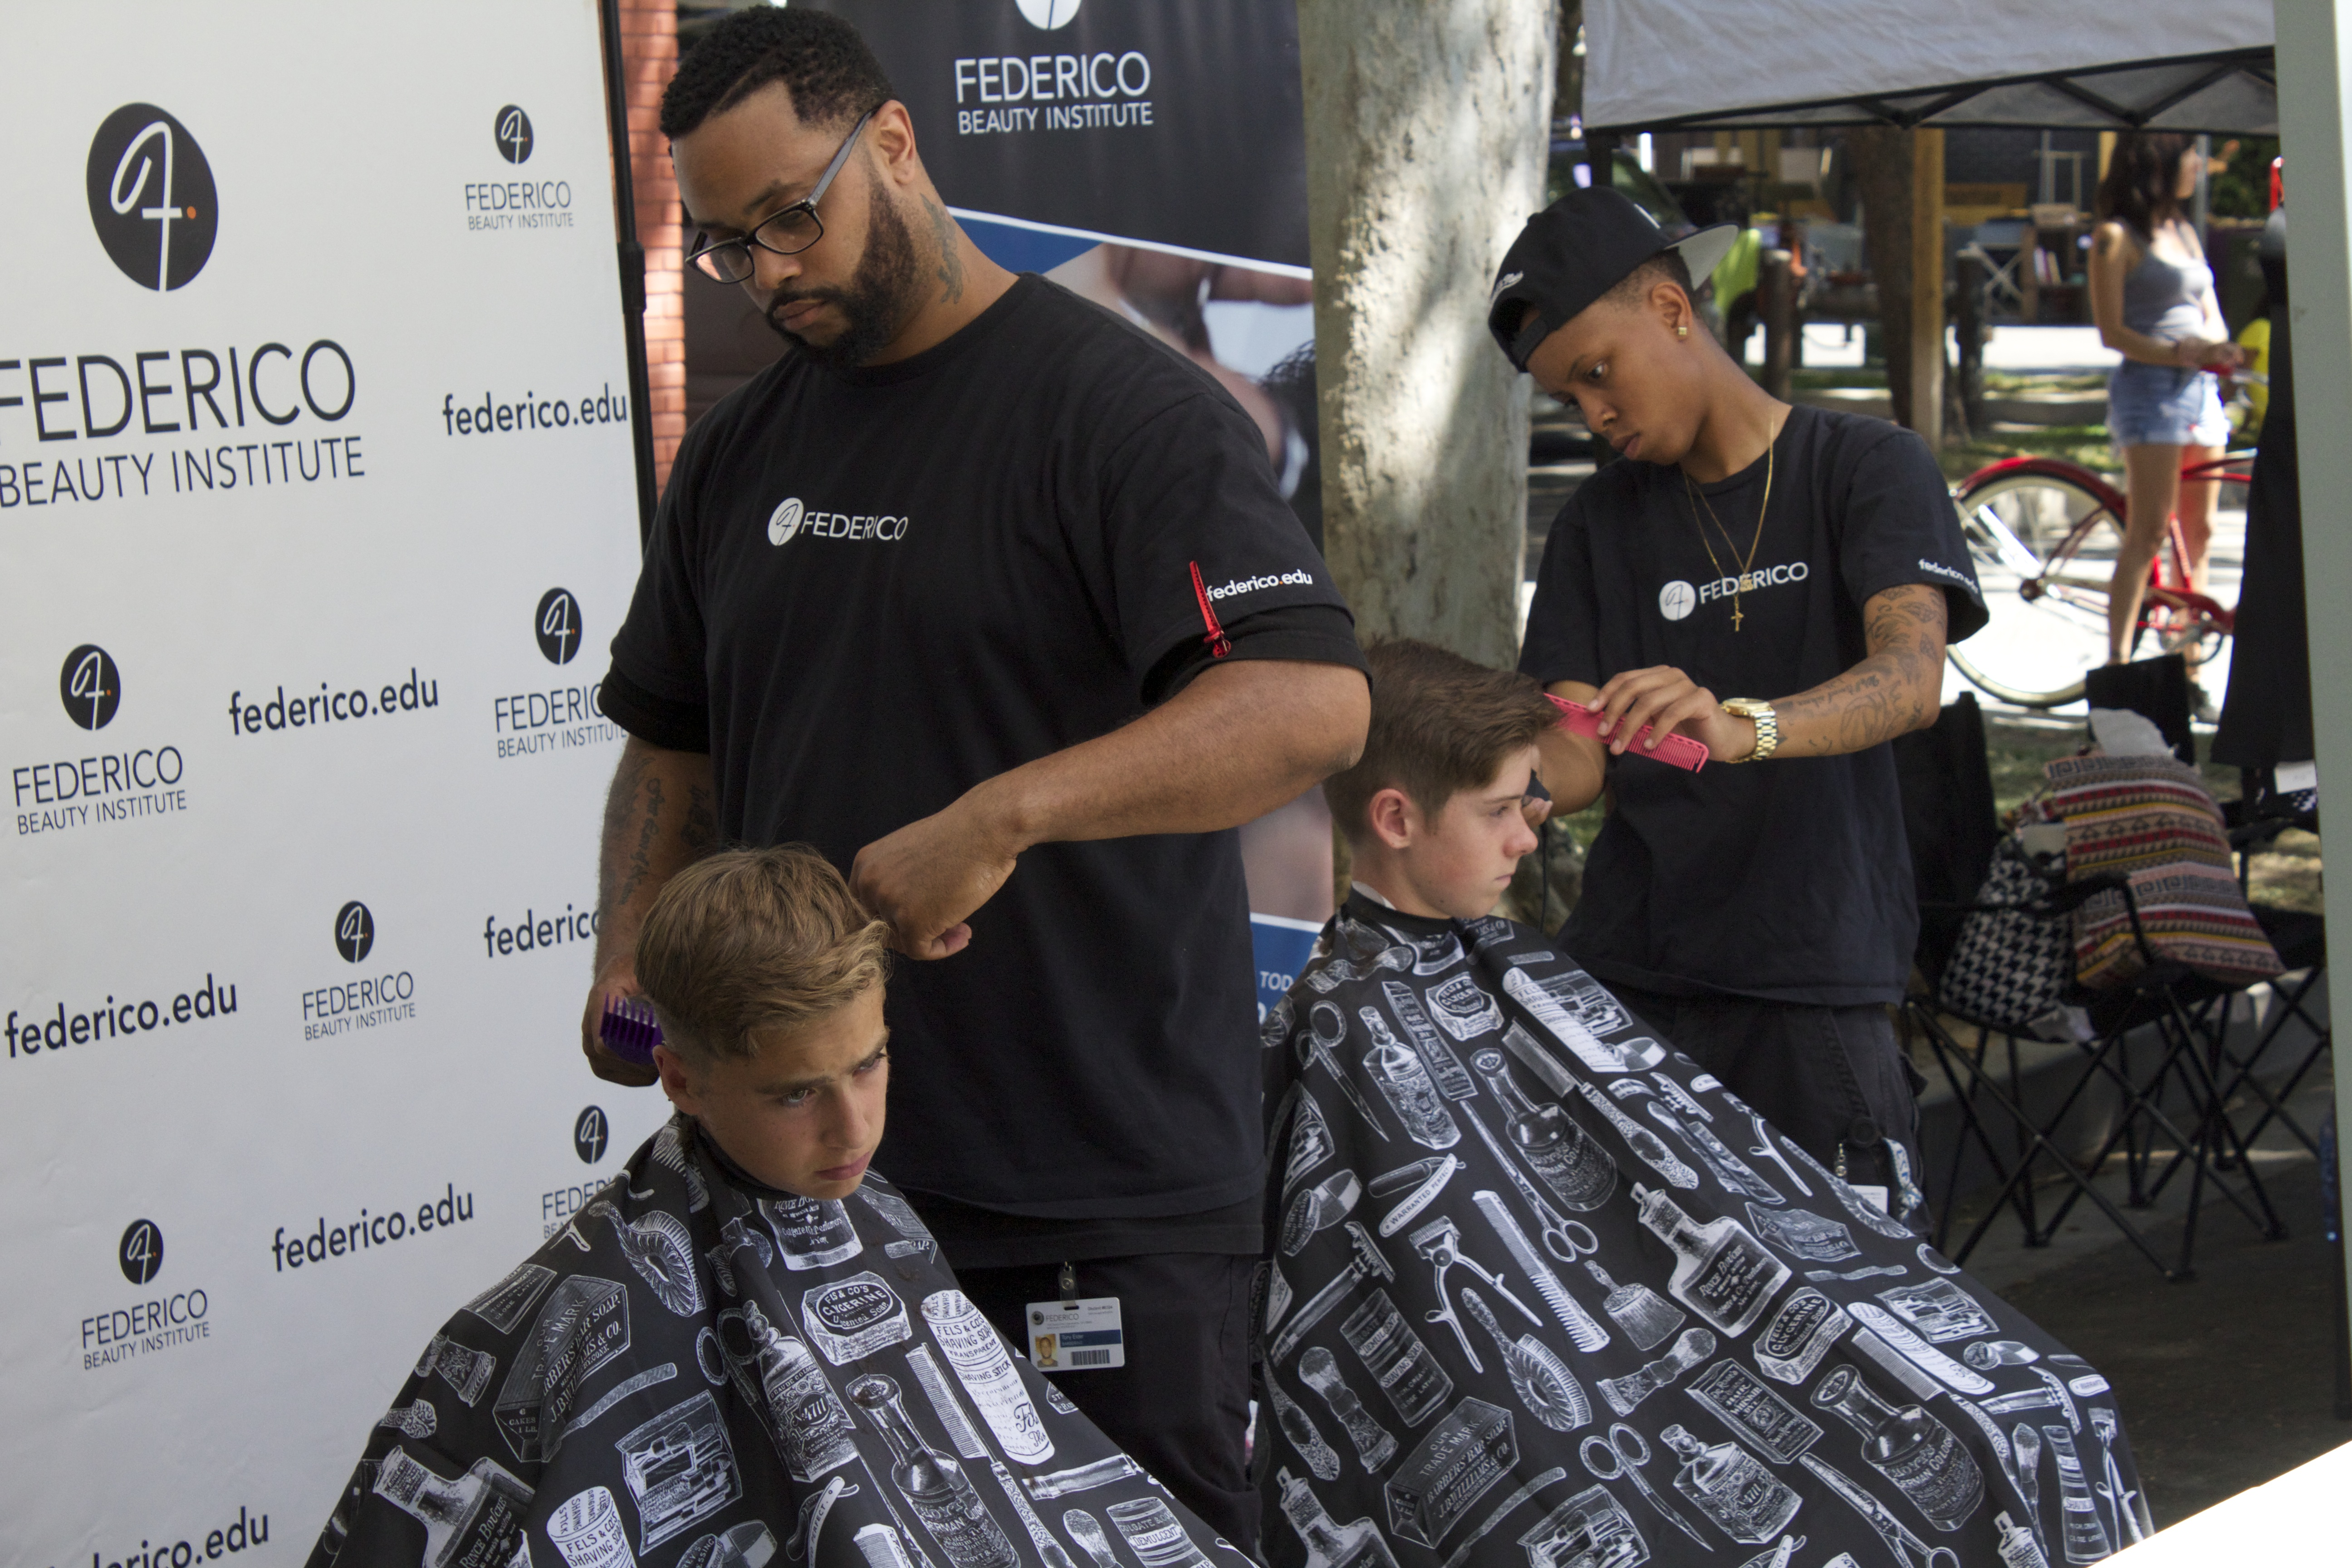 Barber students Keith Z. and Vee getting it done.